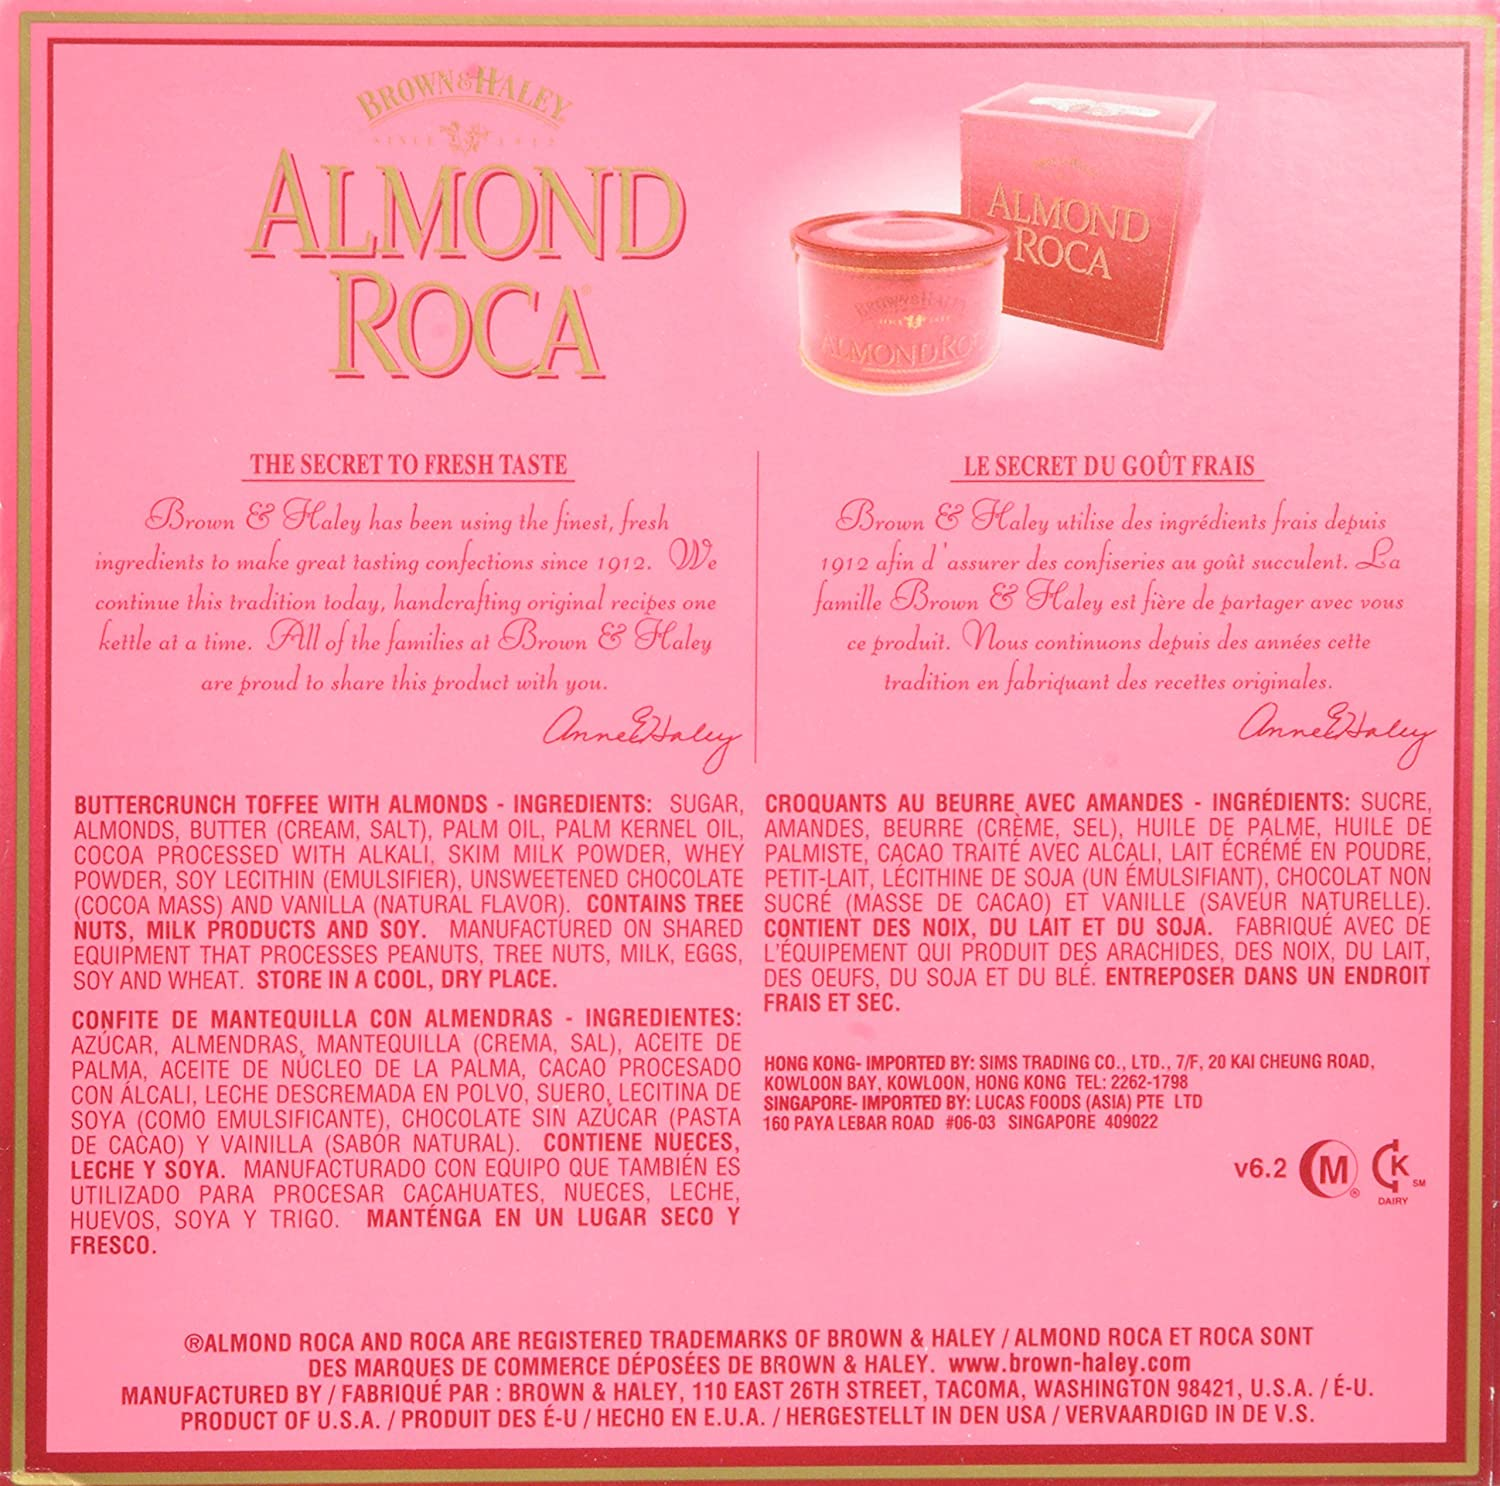 Amazon.com : Almond Roca Classic Tin in Gift Box (12 oz) : Gourmet Candy Gifts : Grocery & Gourmet Food